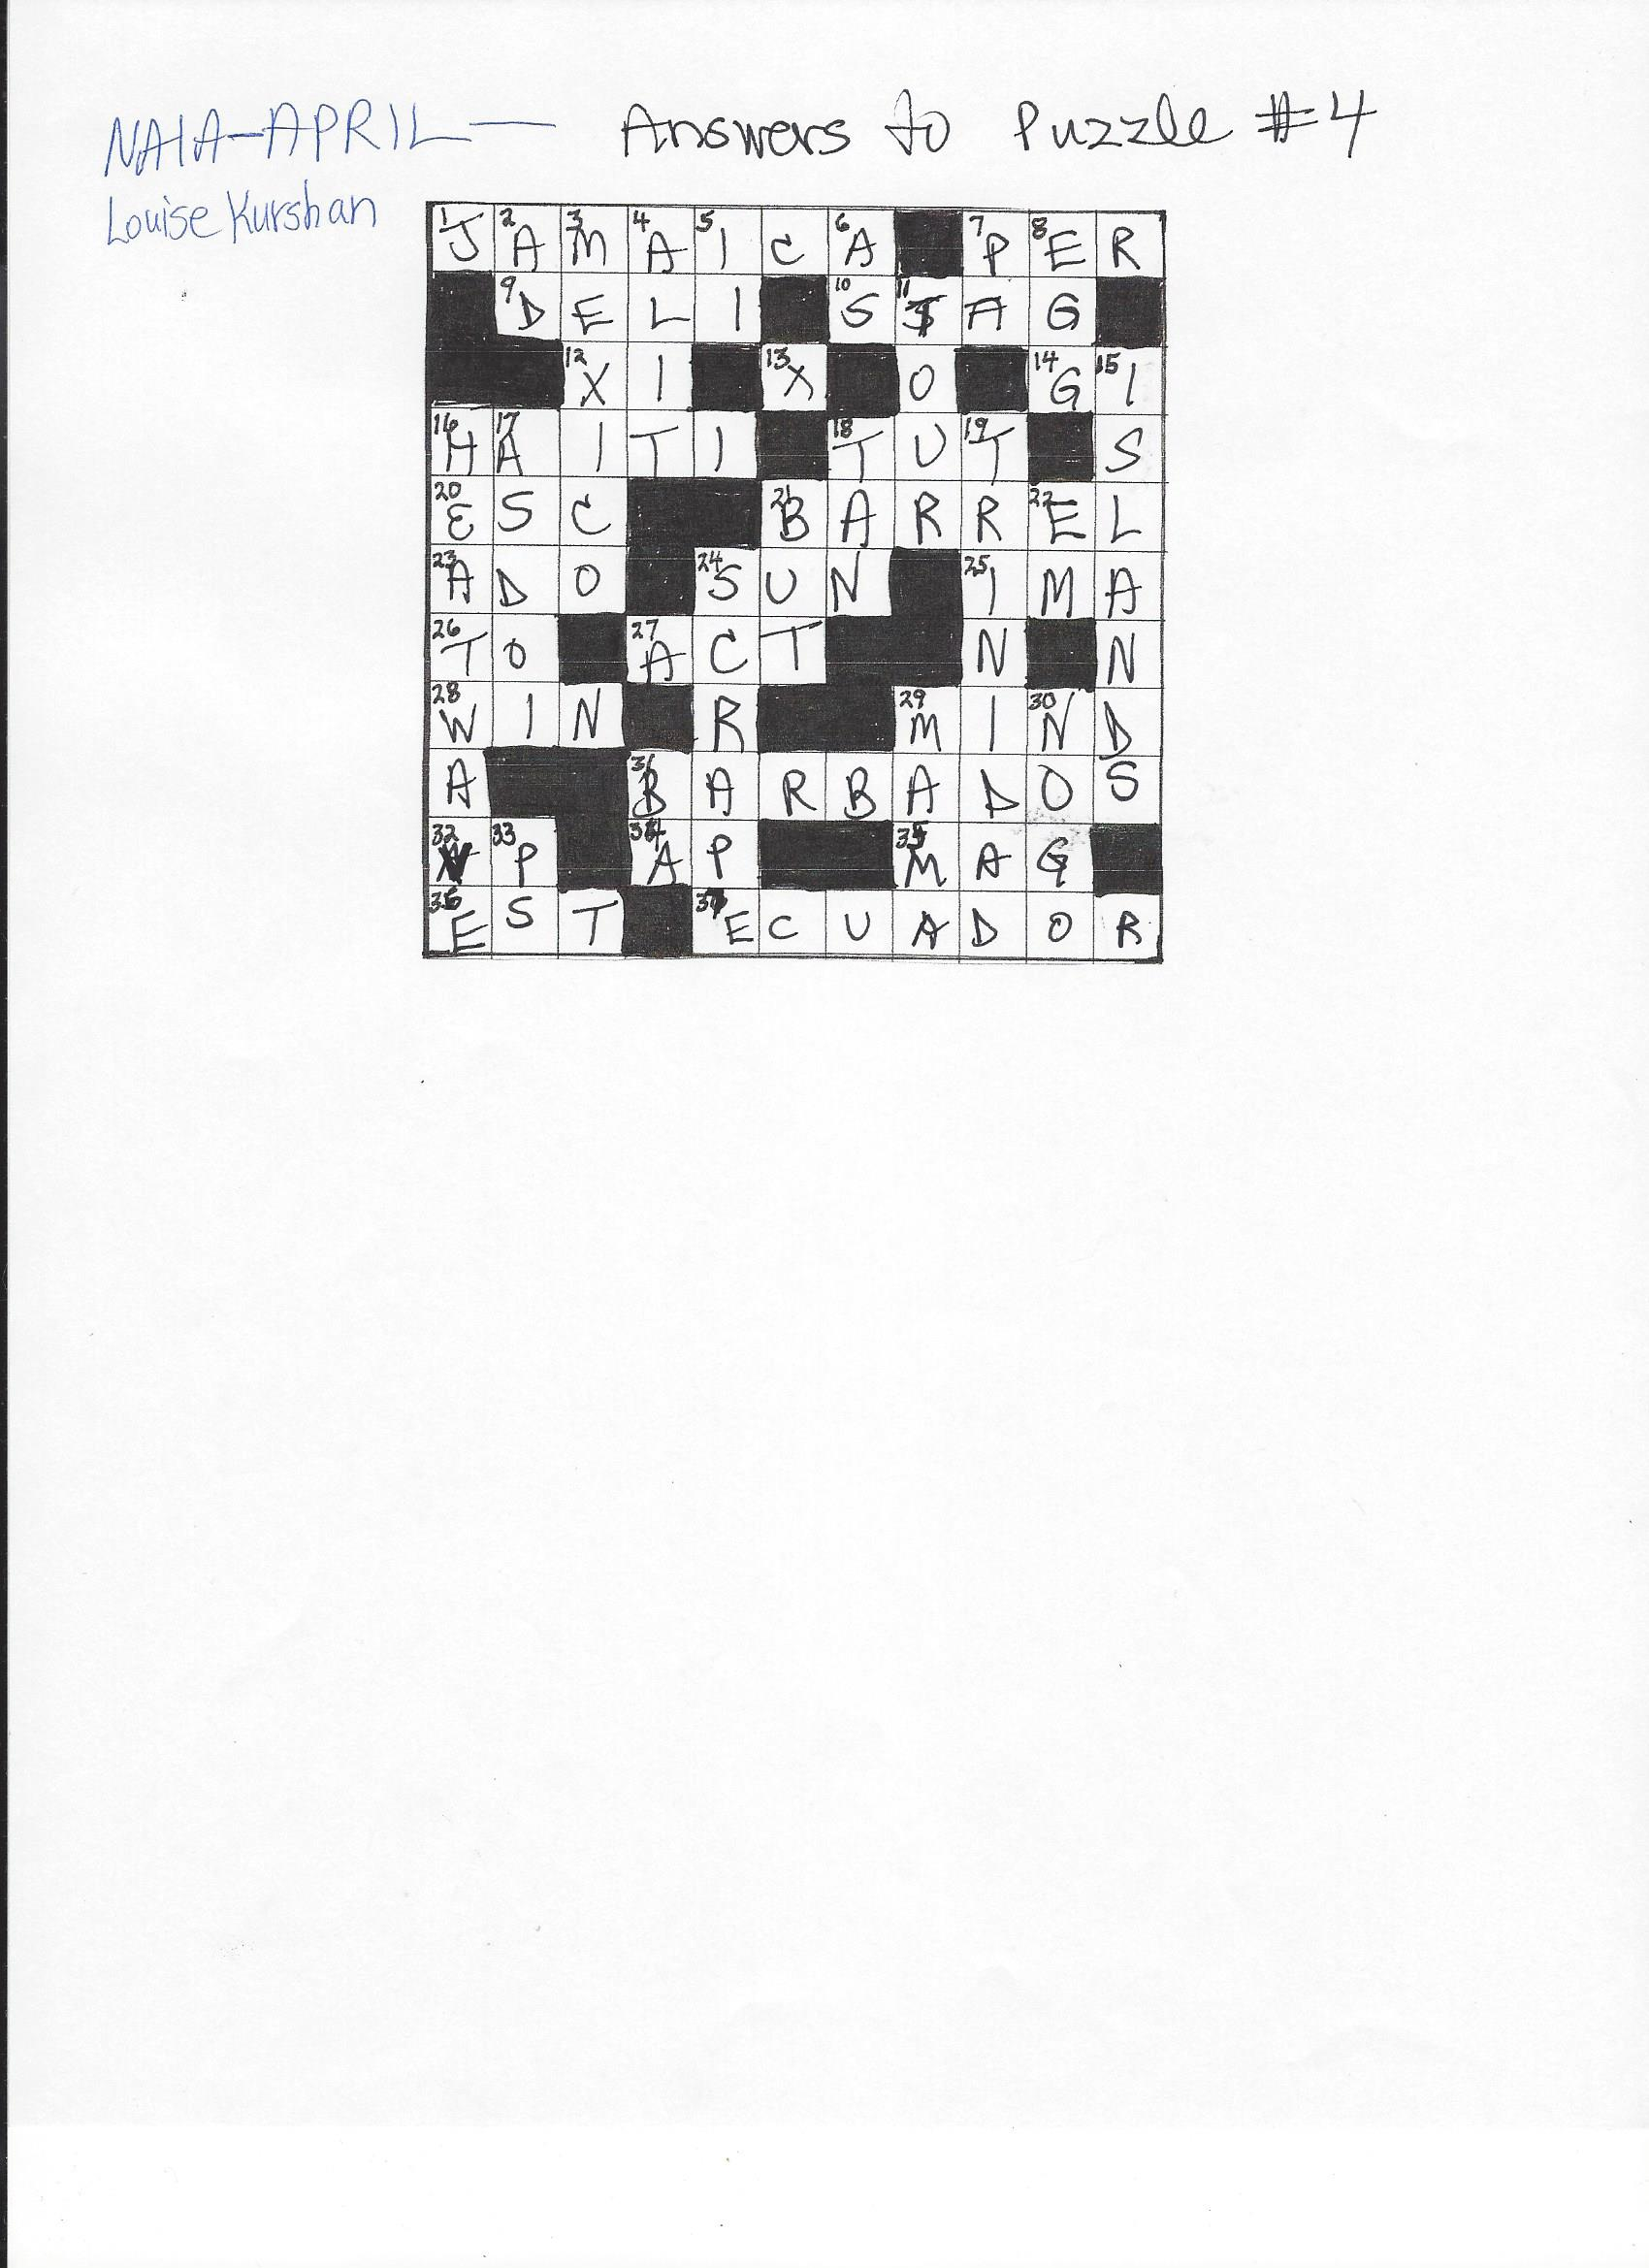 Crossword answers to $4.jpg